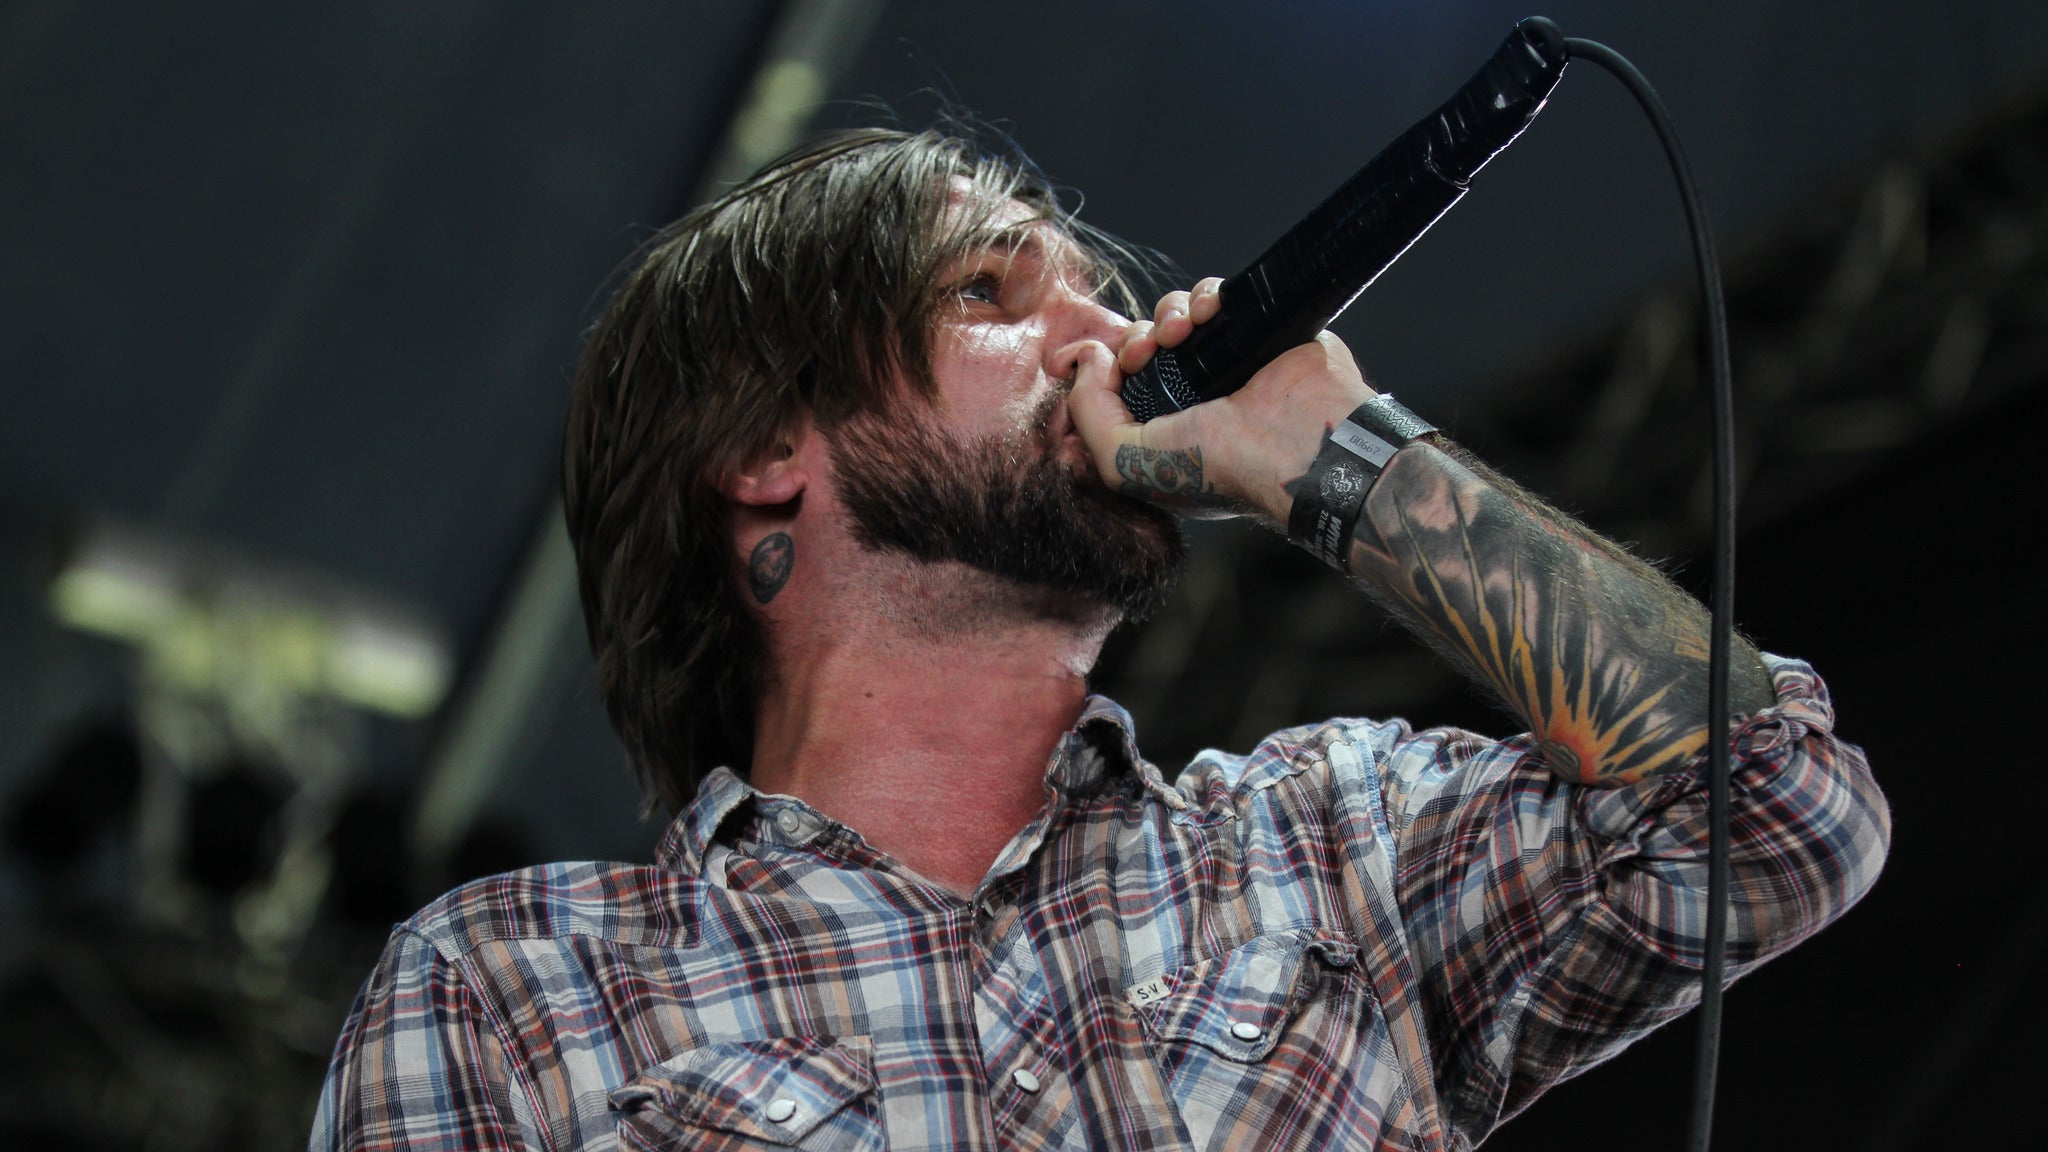 Every Time I Die at Port City Music Hall